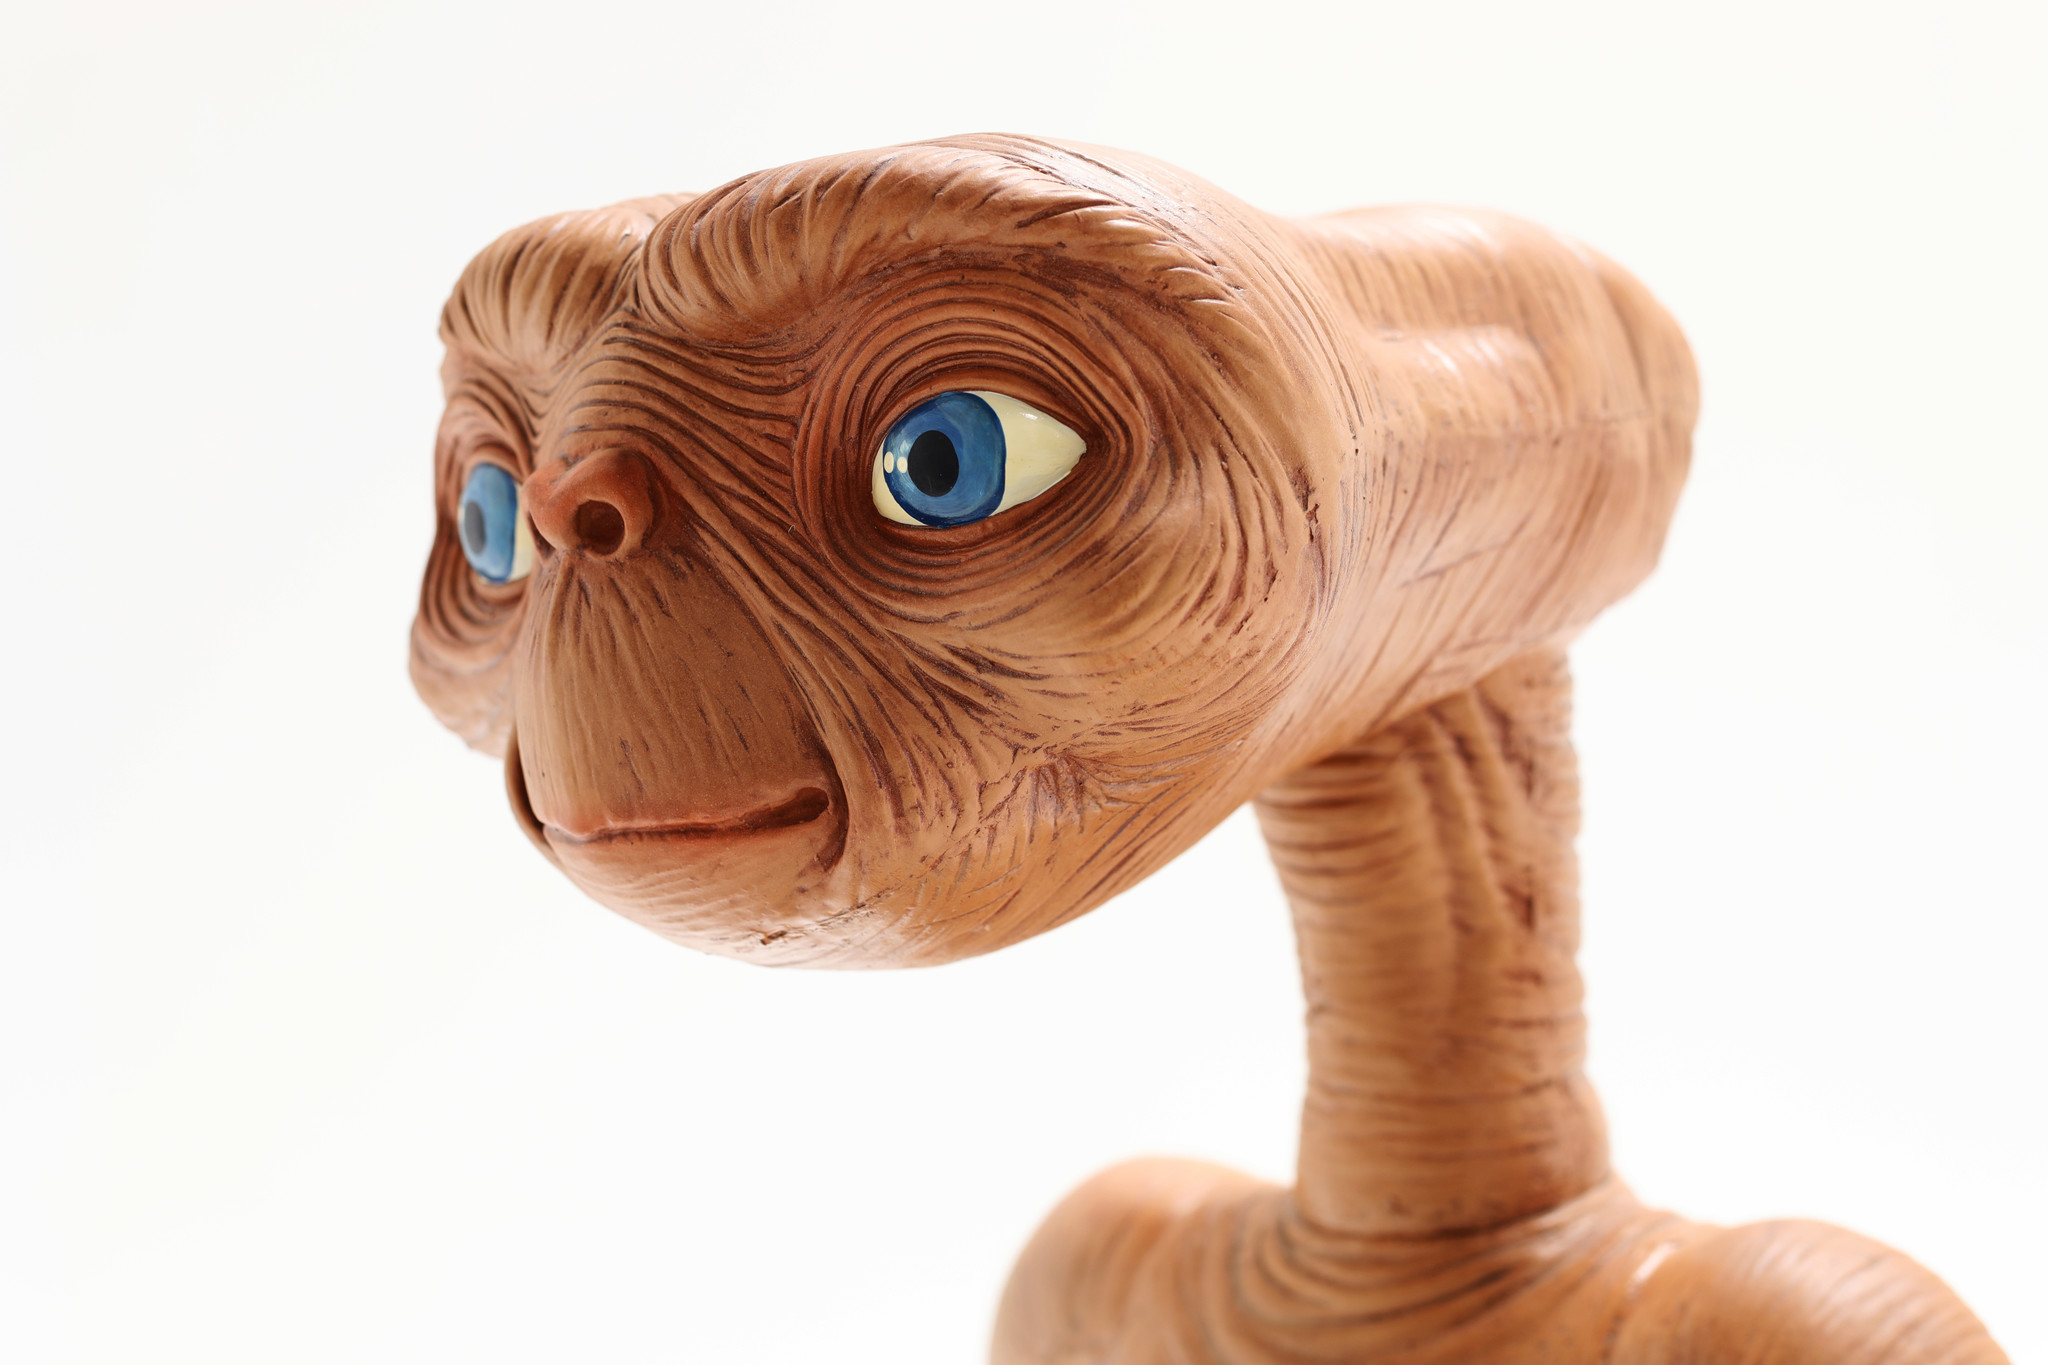 Original life-size ET produced by Universal studio for Neca